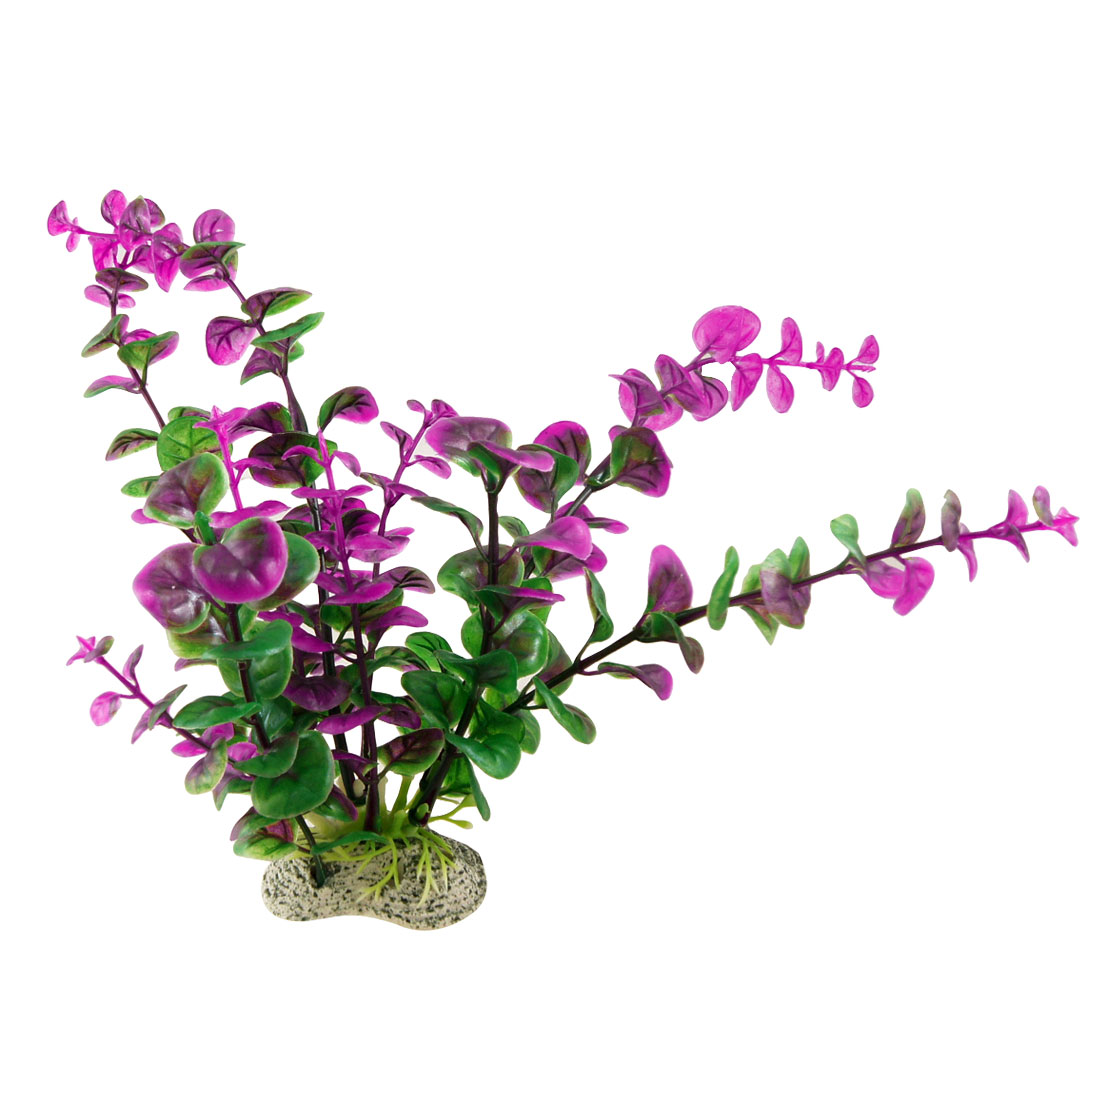 "Fish Tank 8"" Height Fuchsia Green Plastic Plant Grass Decoration"